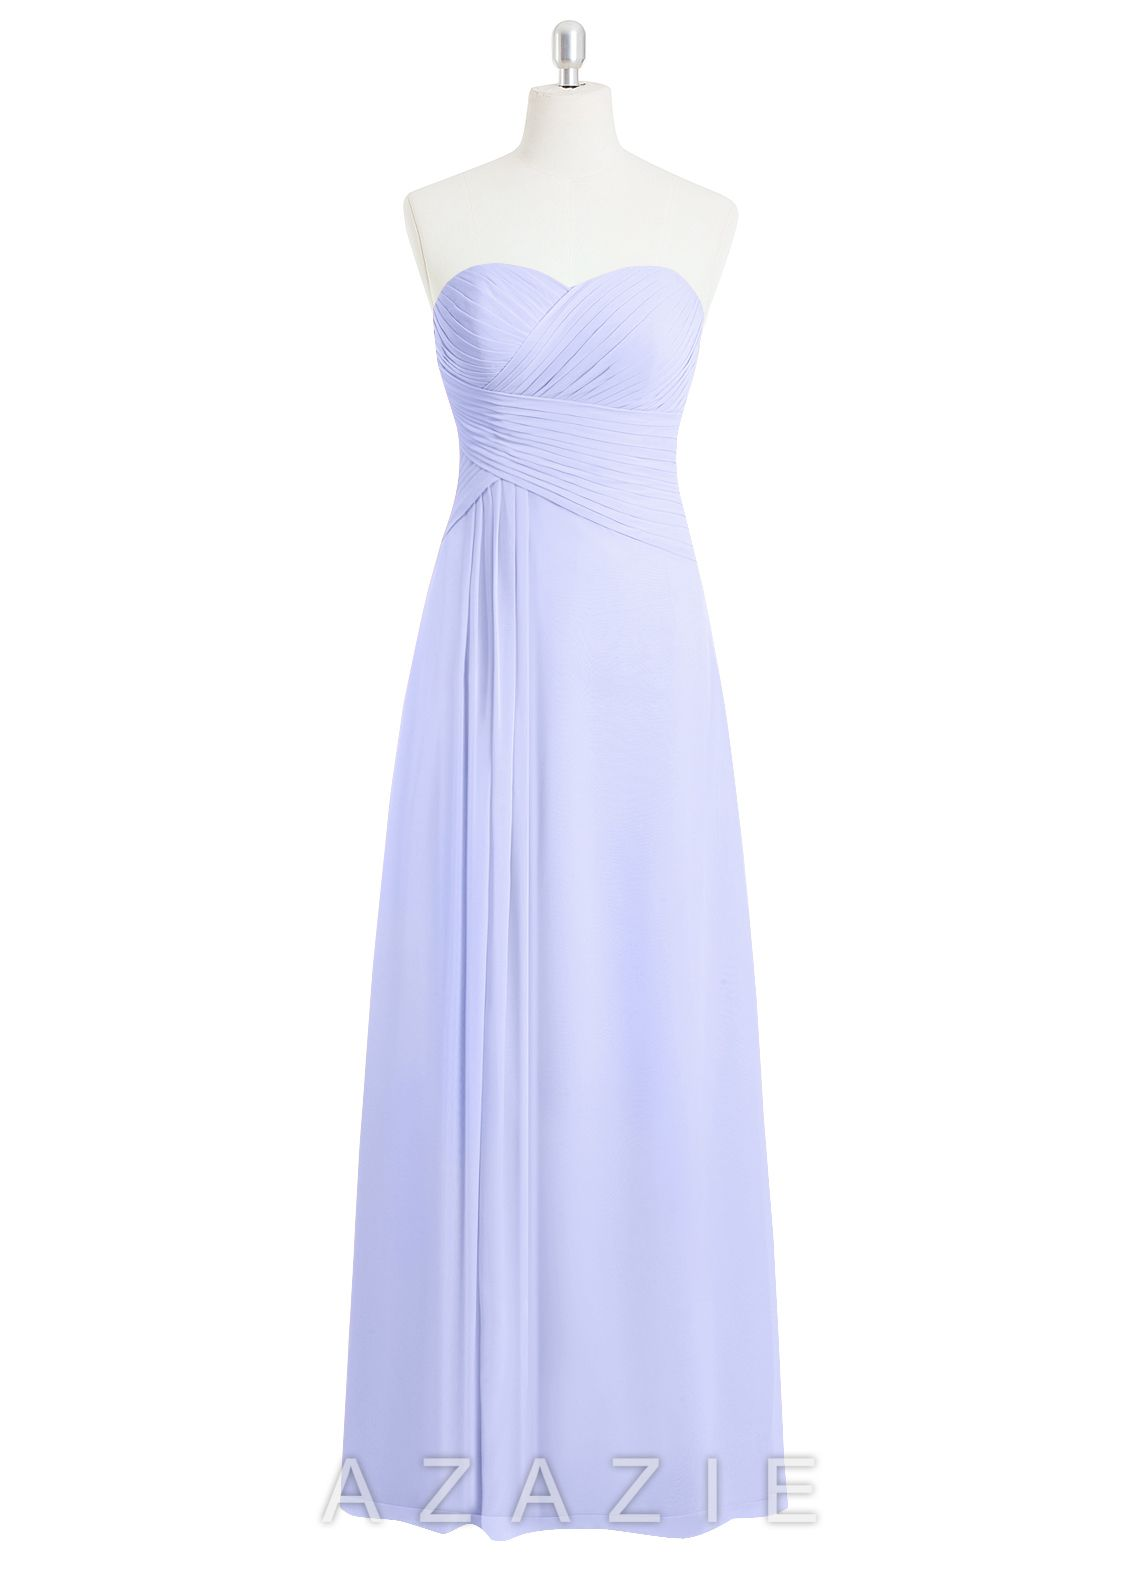 Shop Azazie Bridesmaid Dress - Magnolia in Chiffon. Find the perfect made-to-order bridesmaid dresses for your bridal party in your favorite color, style and fabric at Azazie.